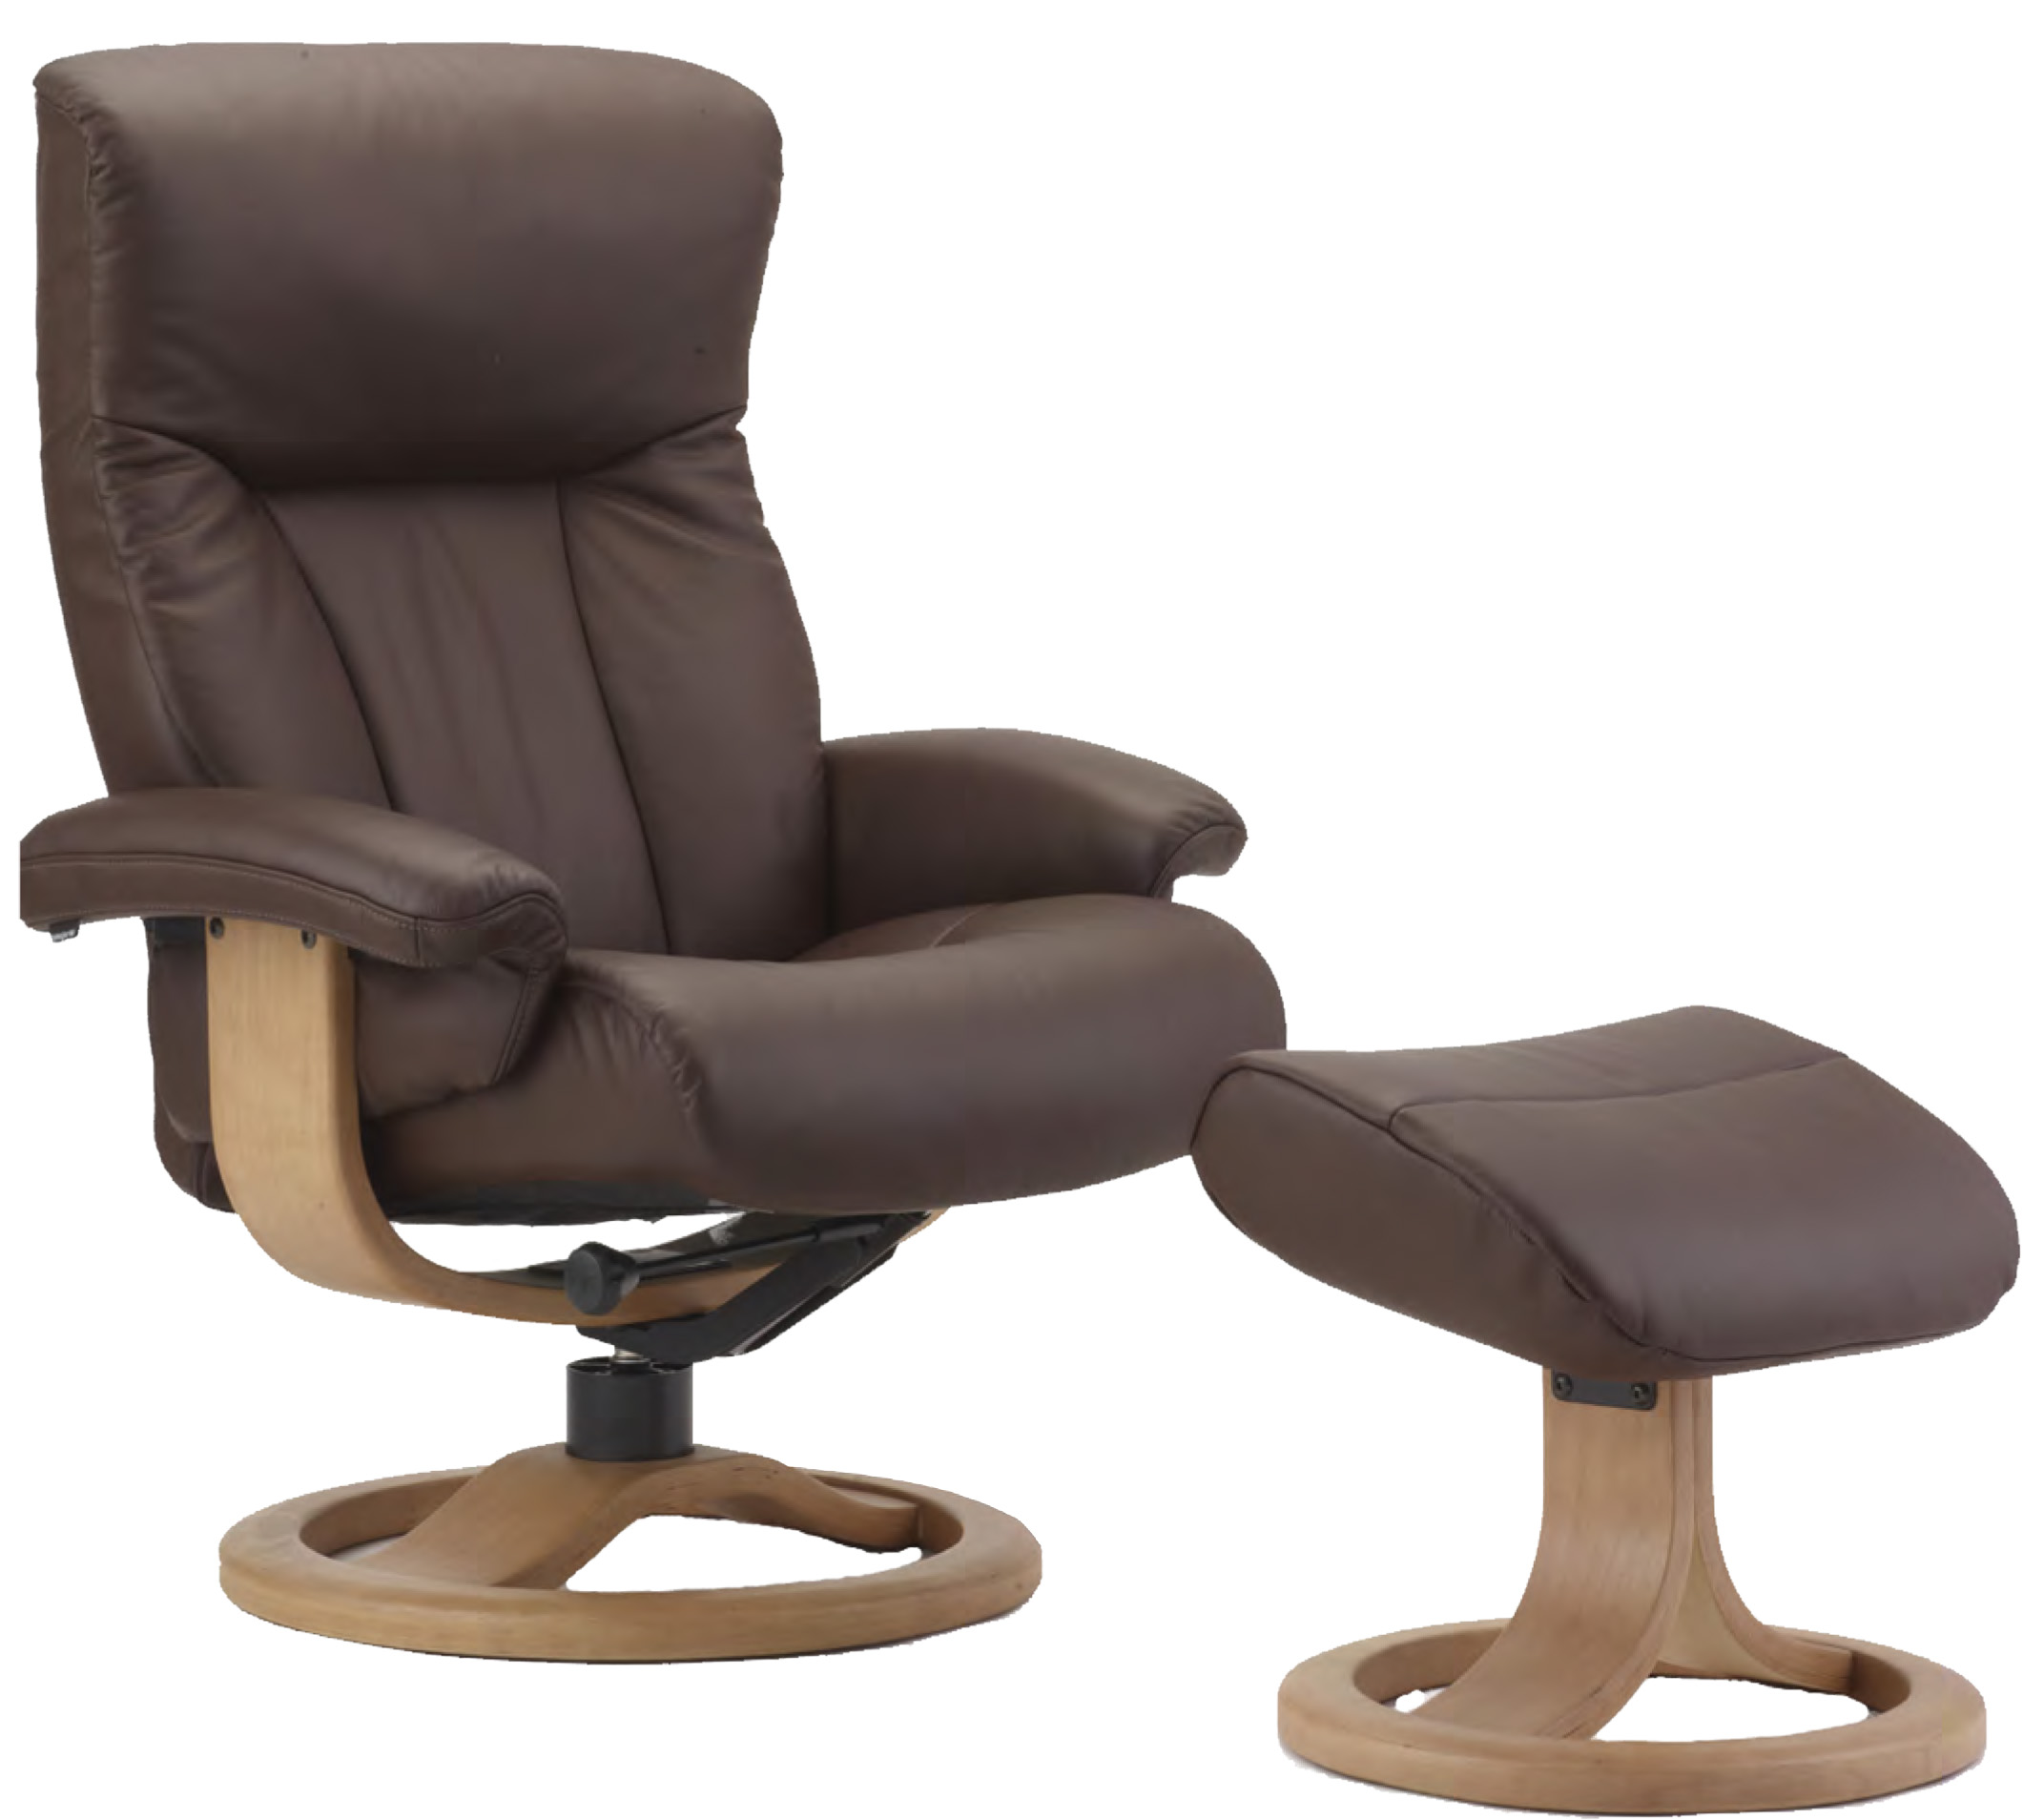 Fjords scandic ergonomic leather recliner chair ottoman scandinavian norwegian lounge chair by - Scandinavian chair ...